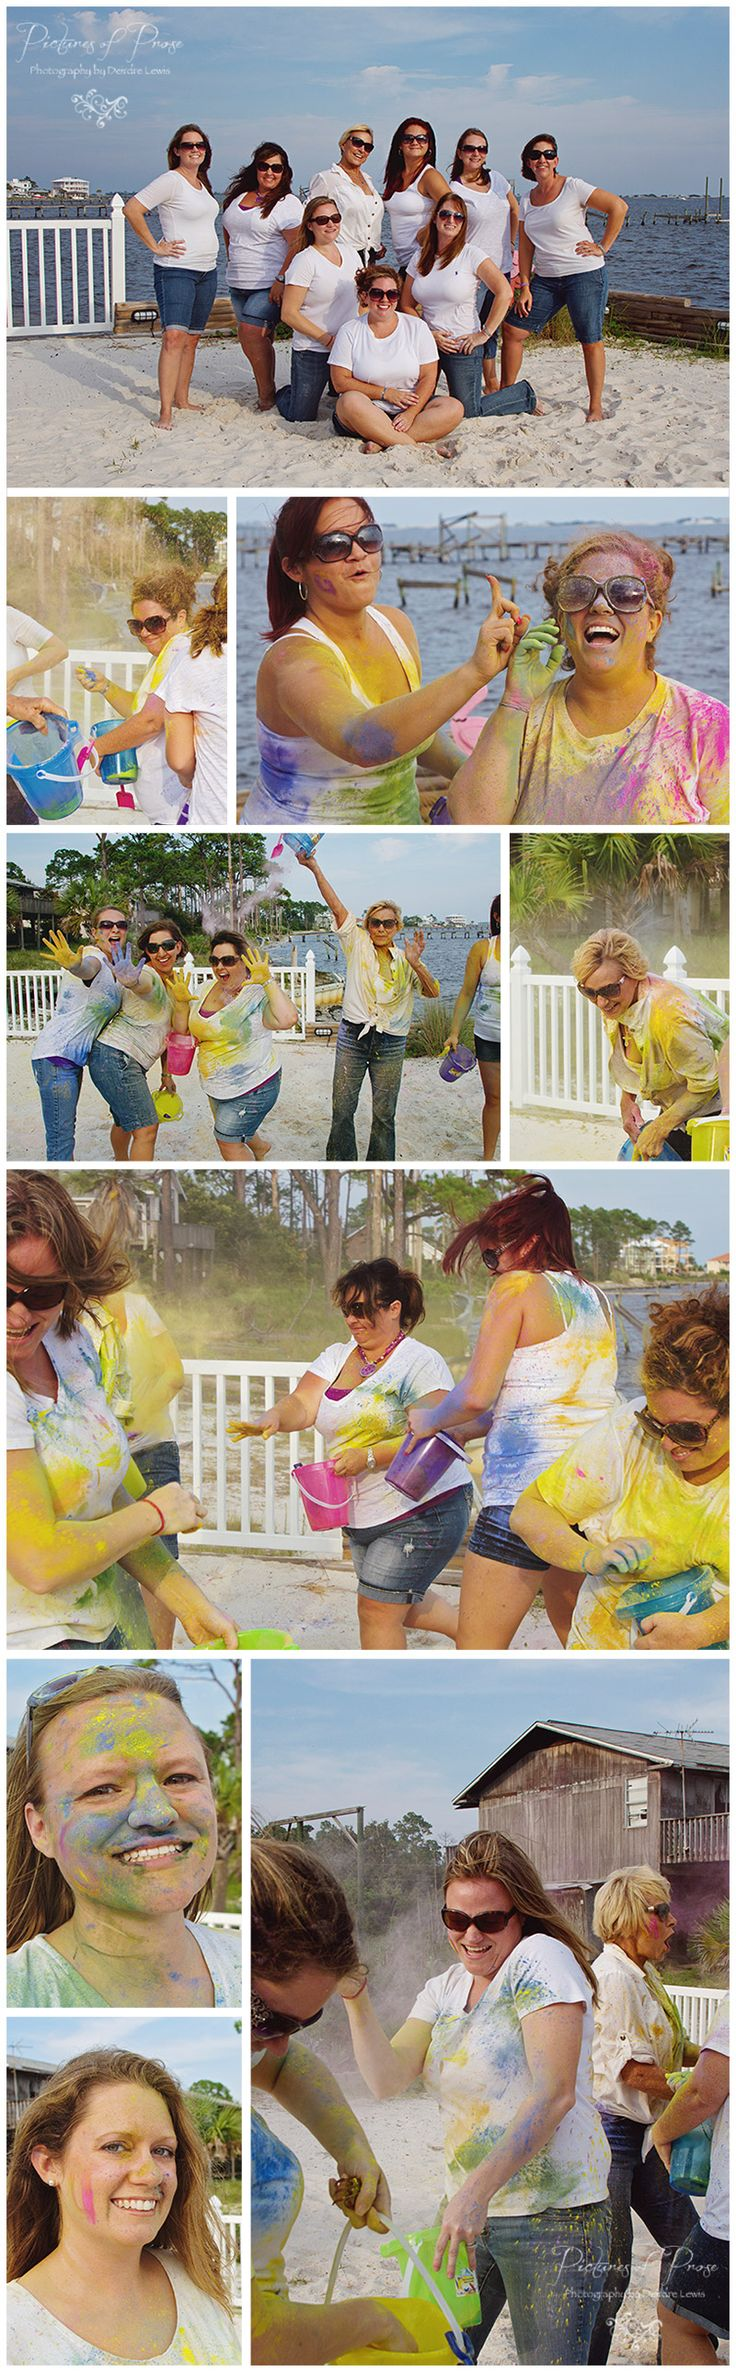 GBUMC (Gulf Breeze United Methodist Church) MOPS IS A Beautiful Mess! @Stacey Luxford-Gagnier International